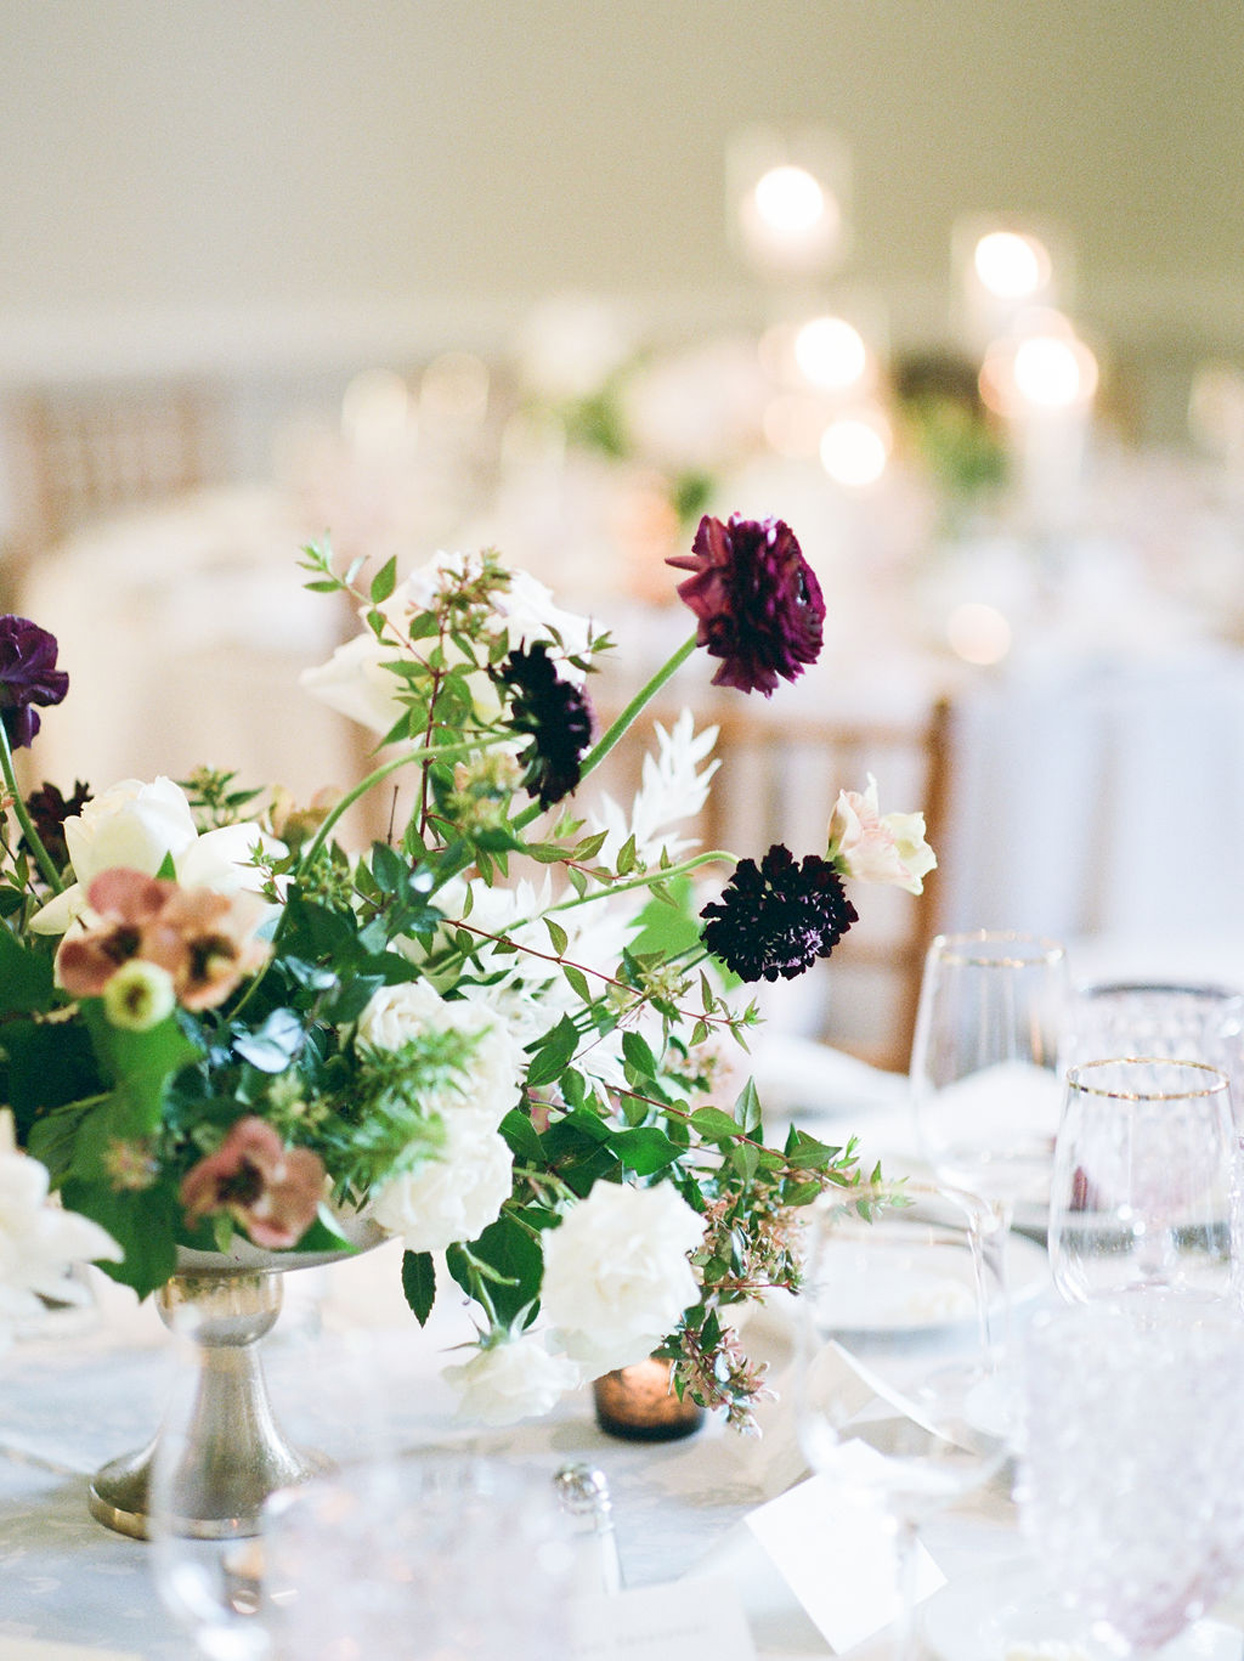 reception table setting with floral arrangement in silver vase